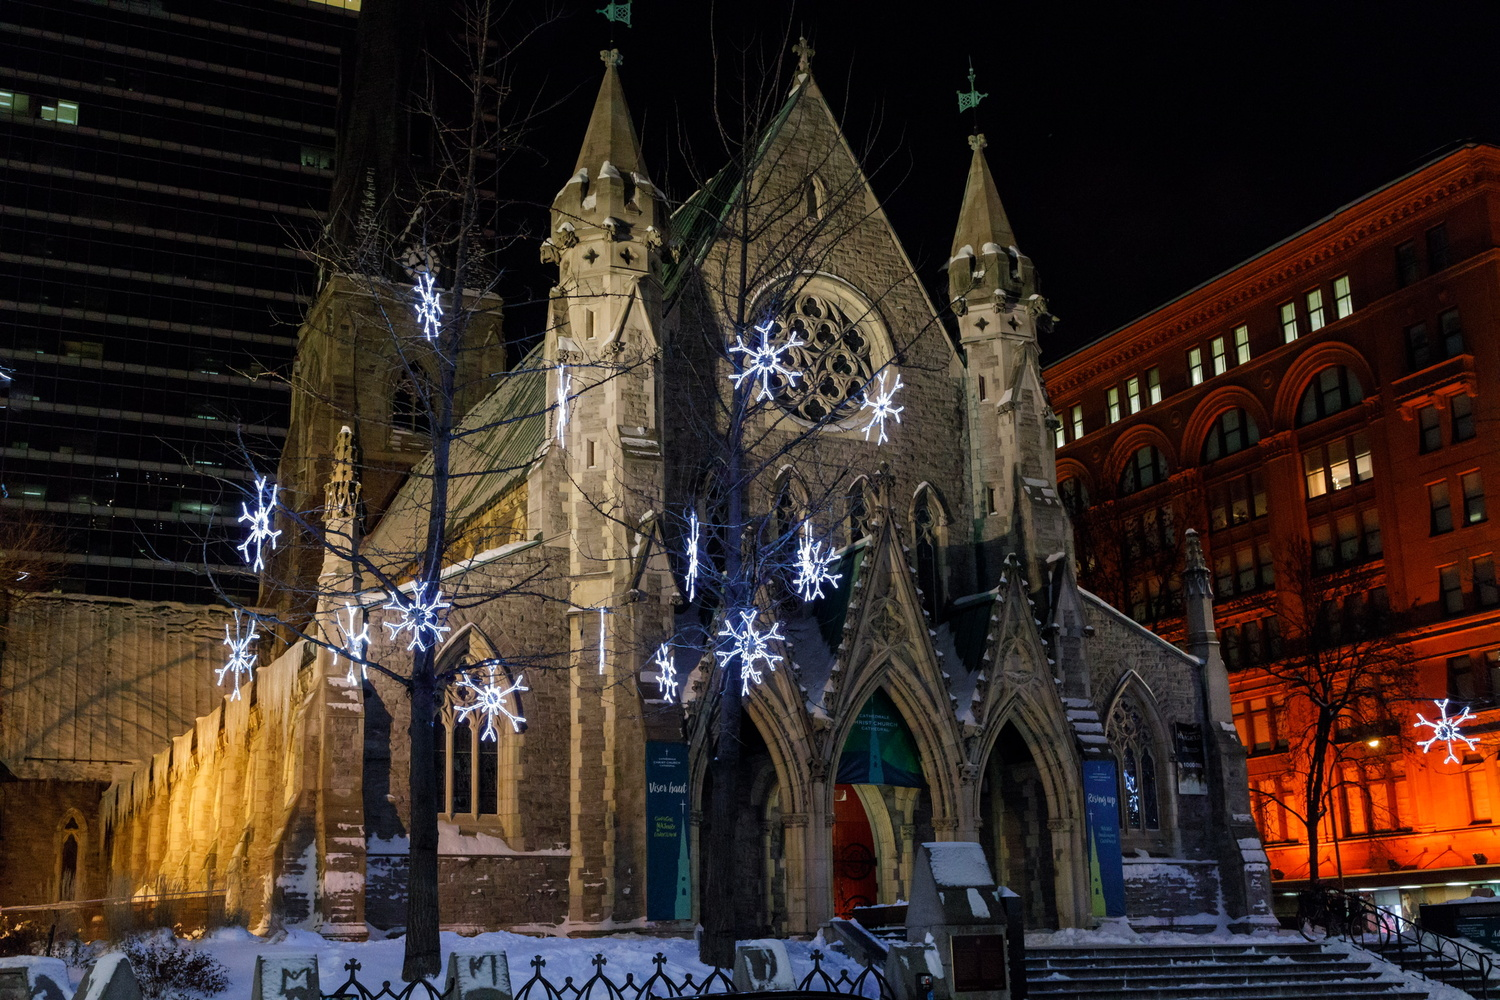 Montreal Christmas by Gerry Hammarth